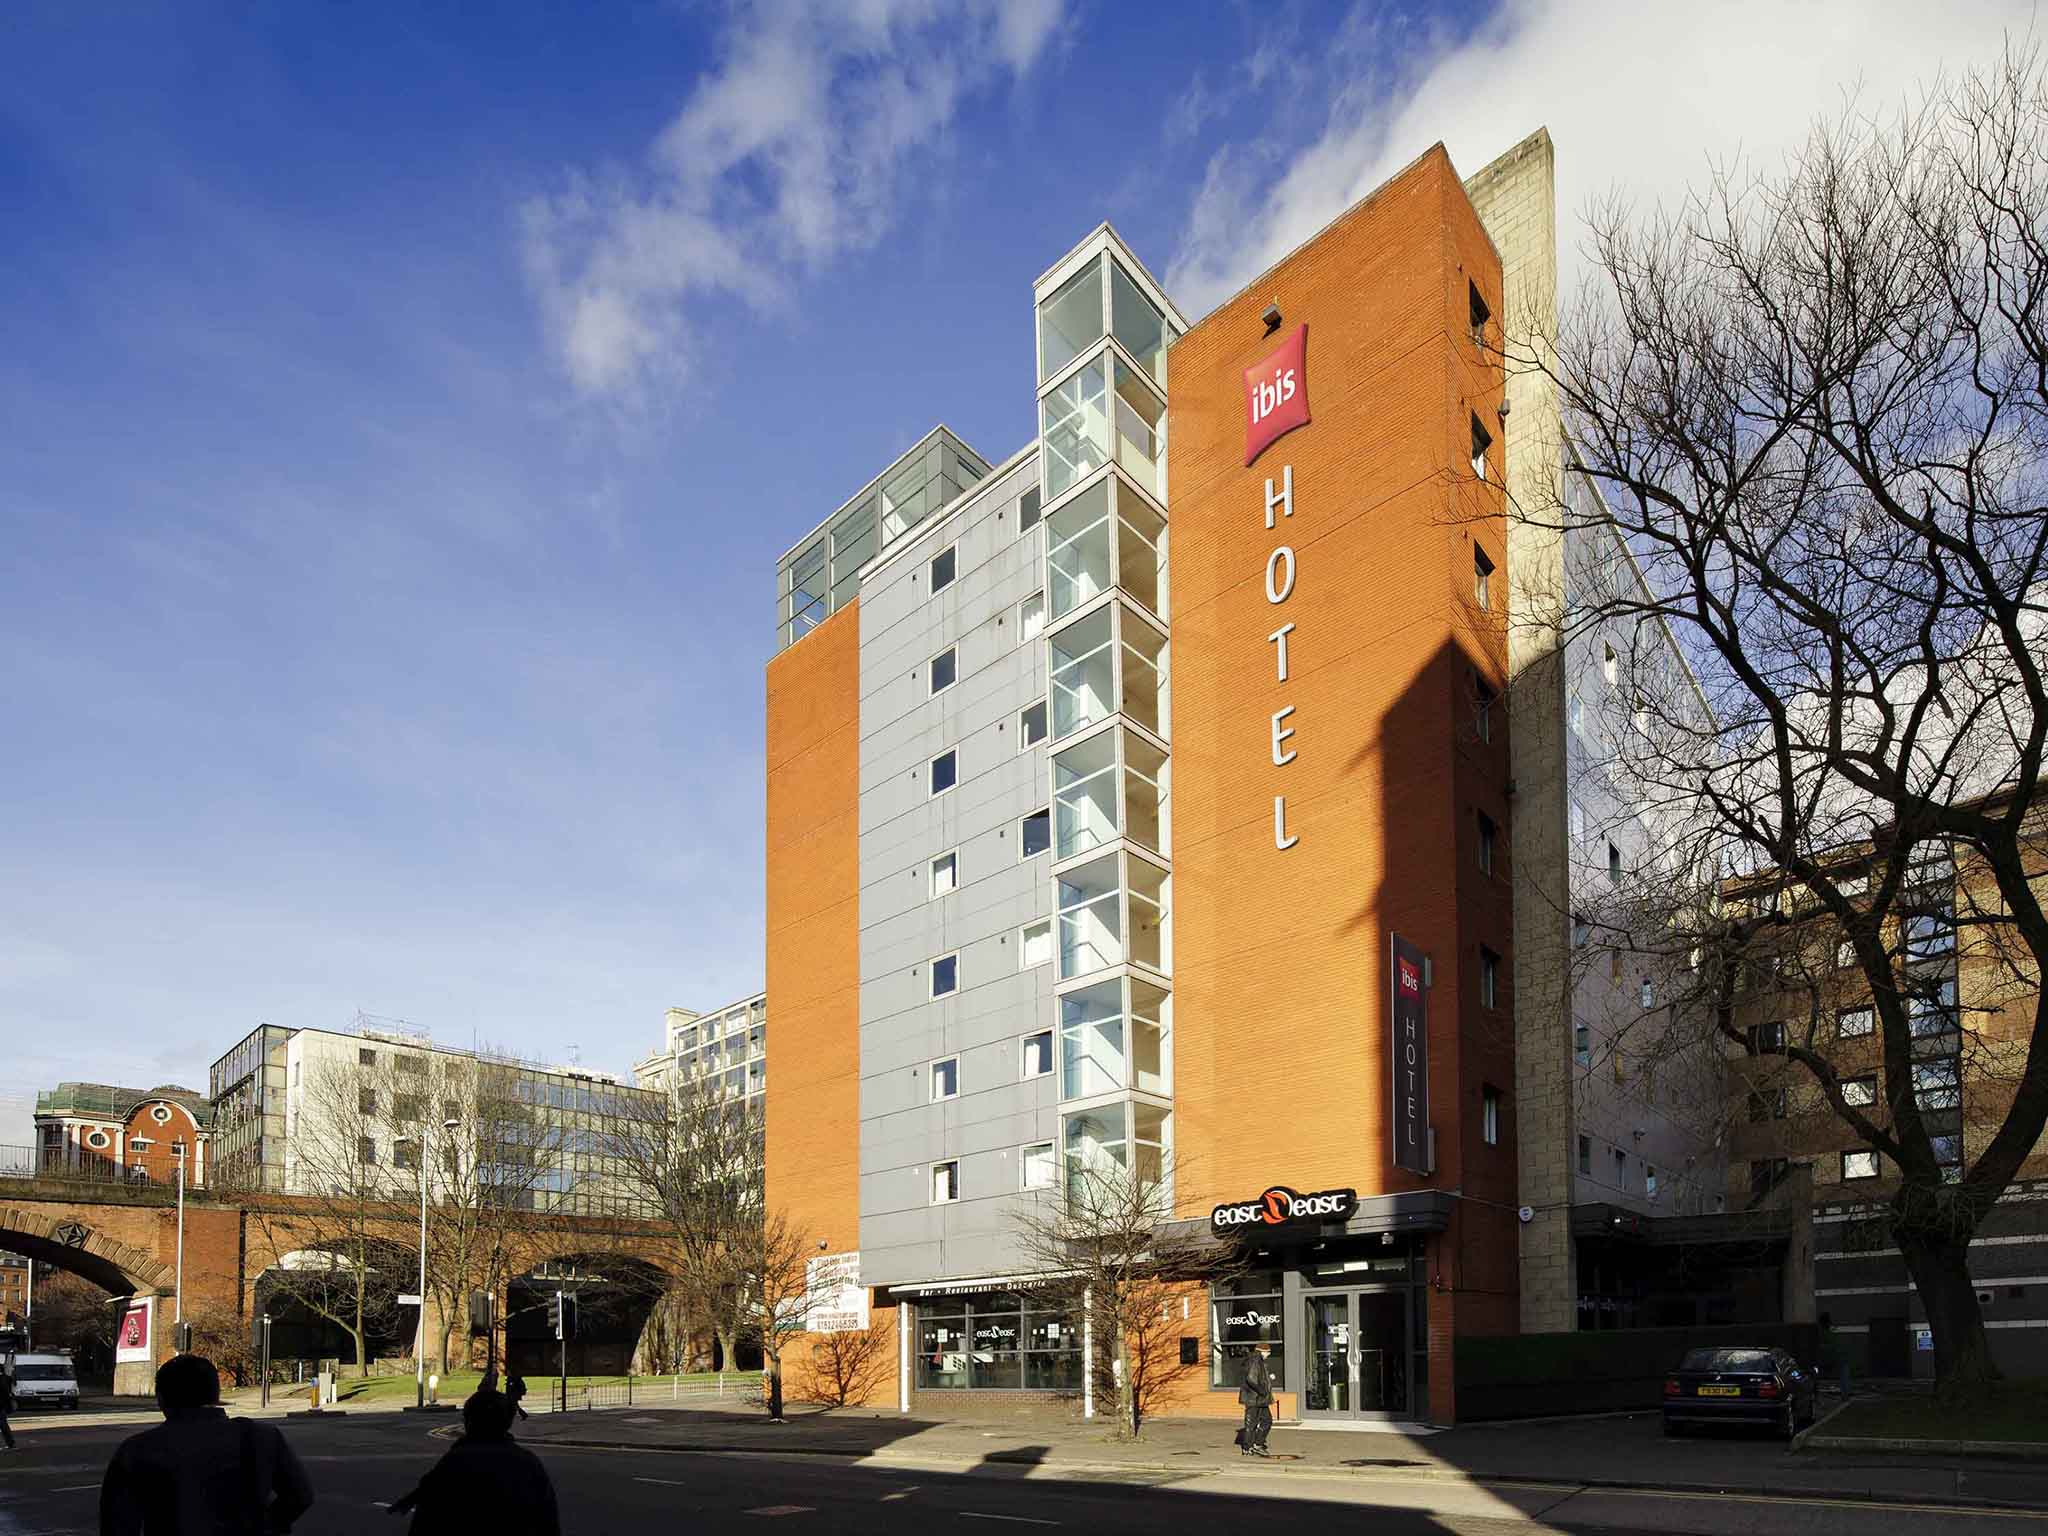 Otel – ibis Manchester Centre Princess Street (new ibis rooms)